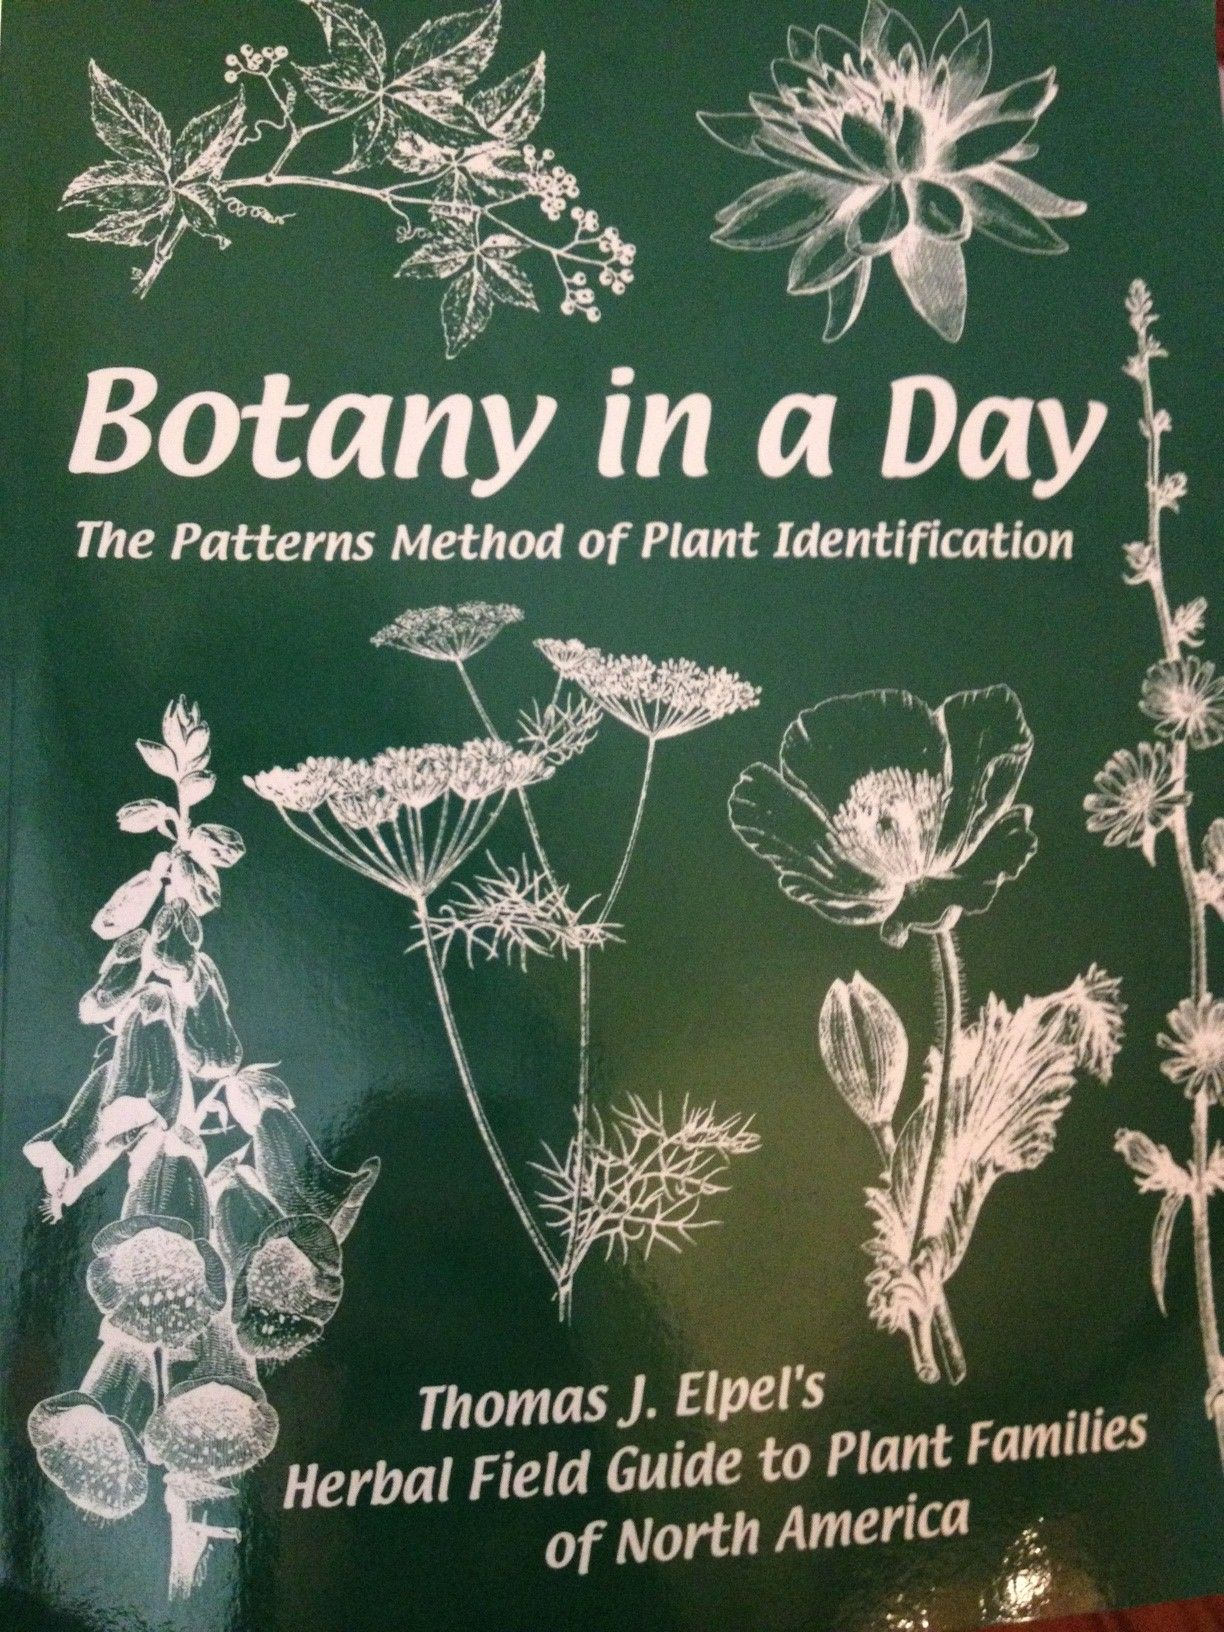 A book that has proved to be very helpful in learning about plant ...